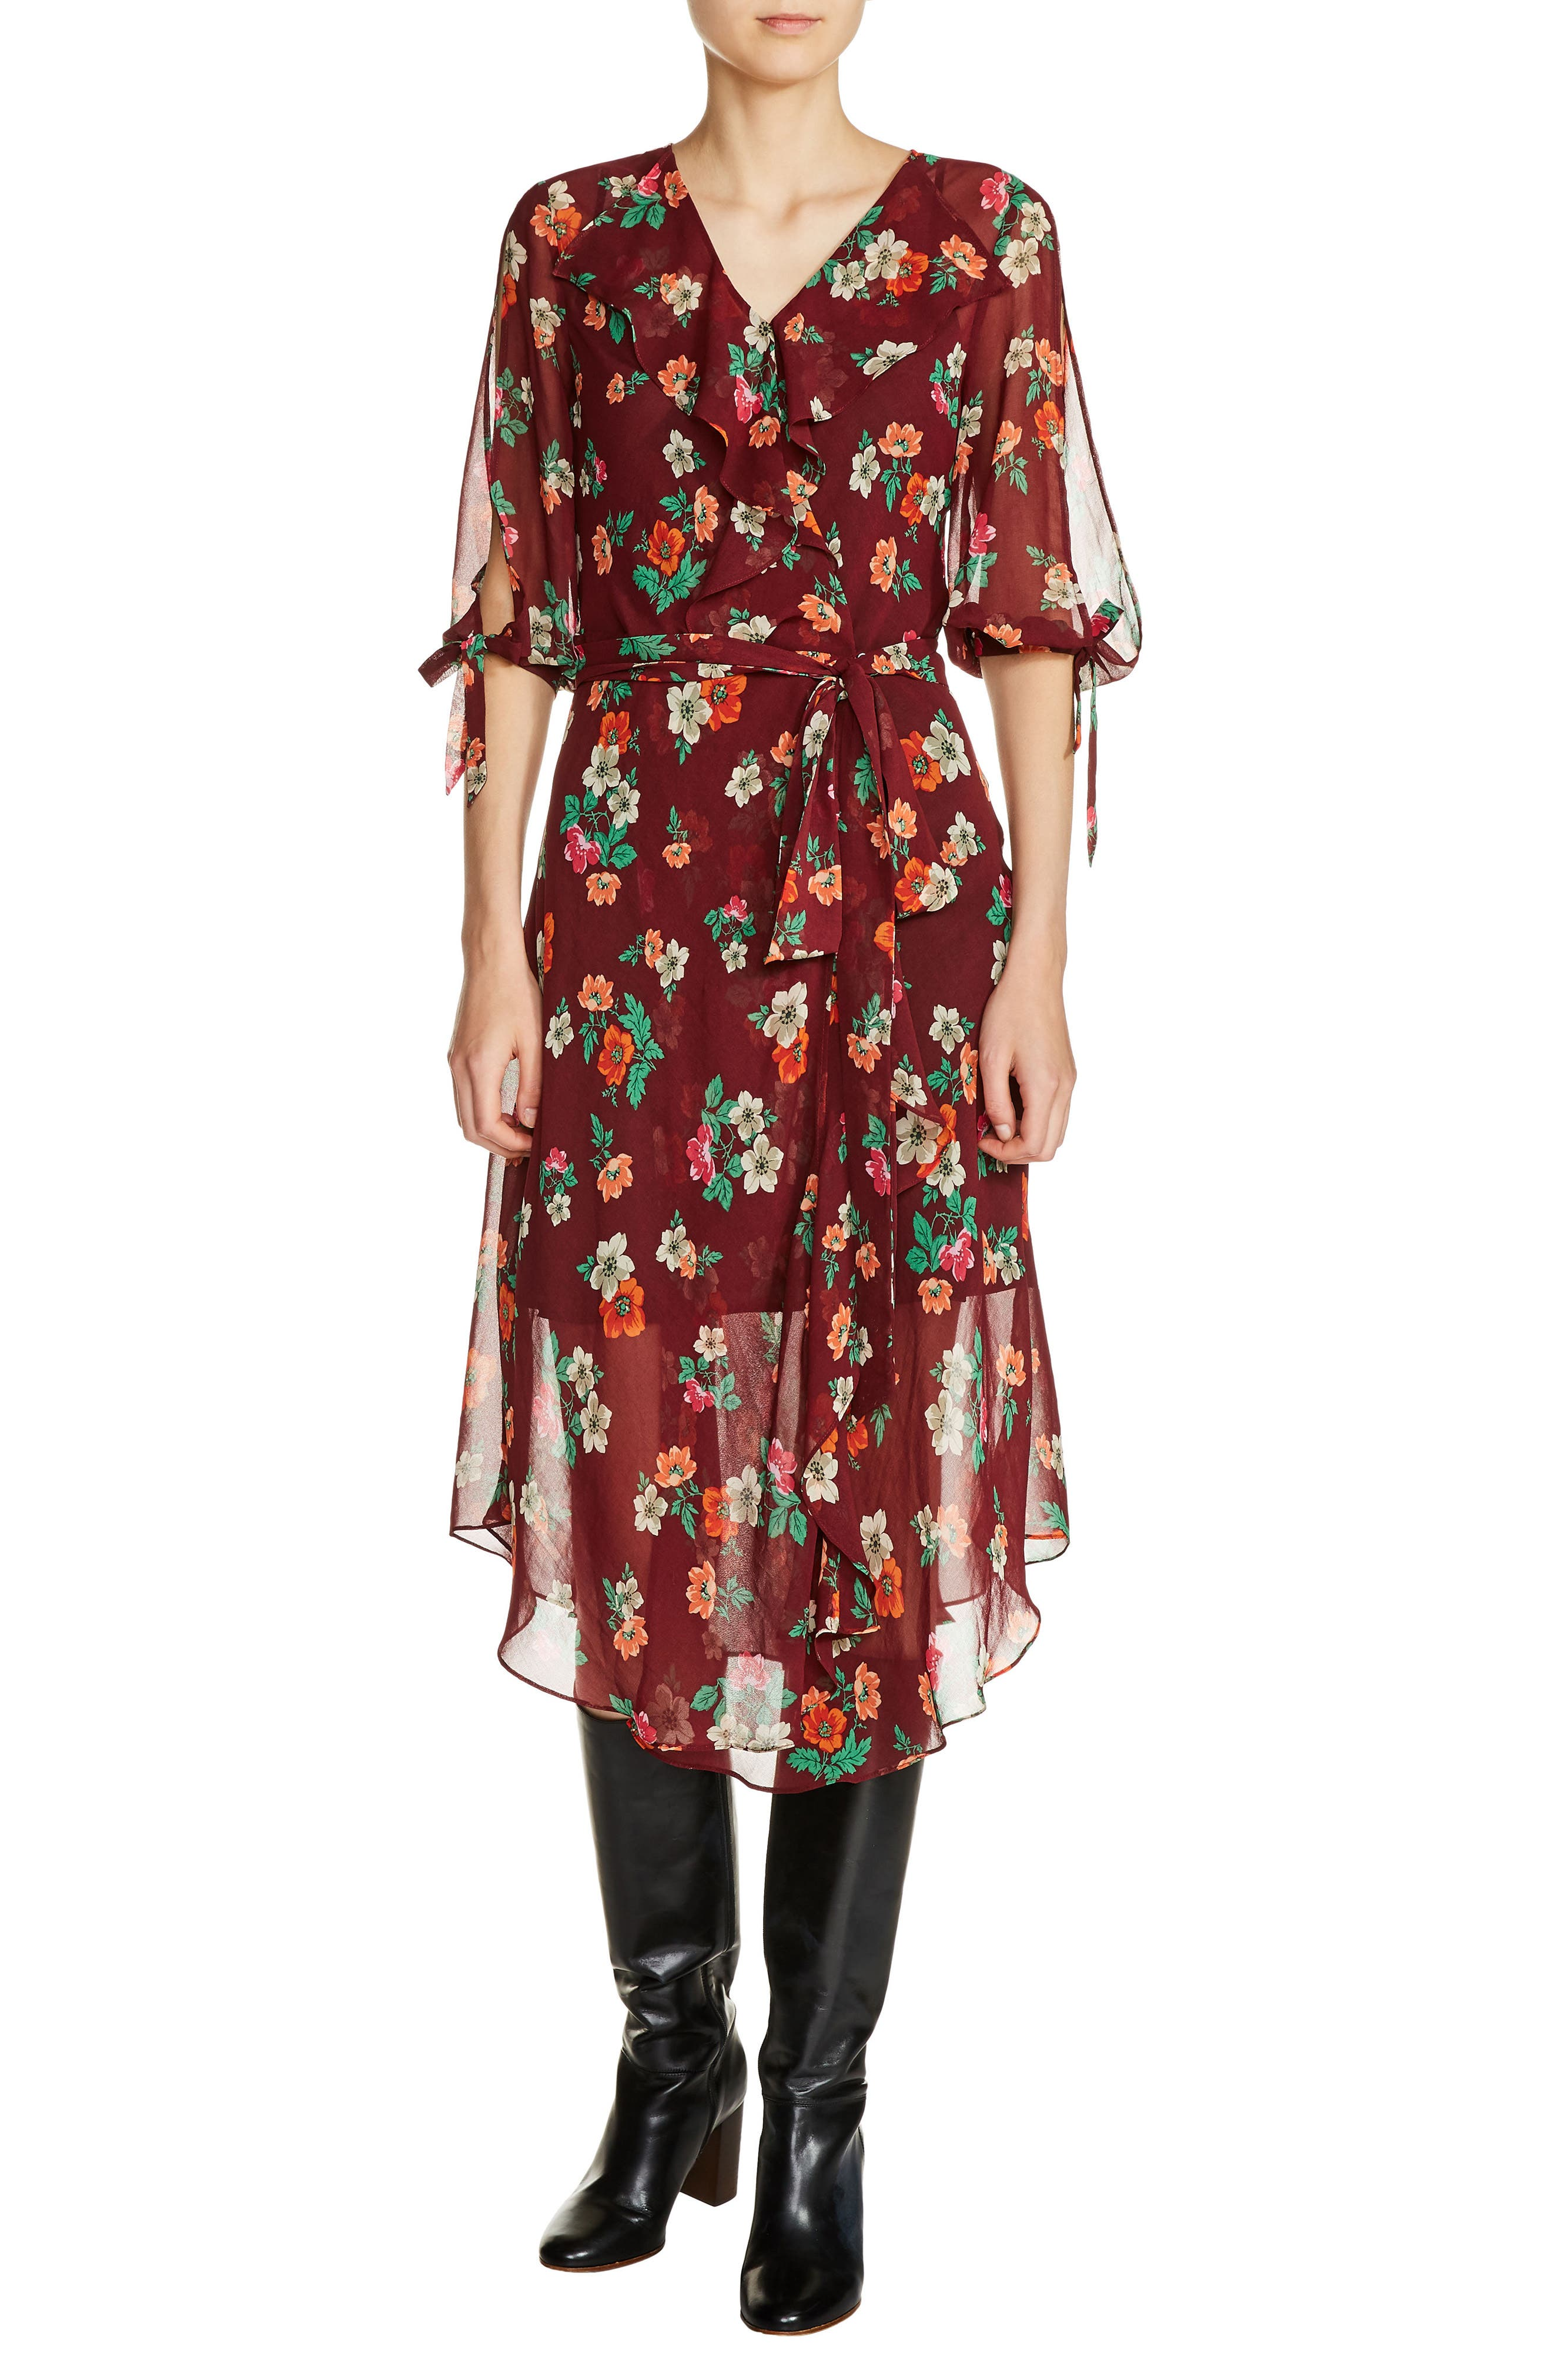 maje Ruffle Floral Print Faux Wrap Dress